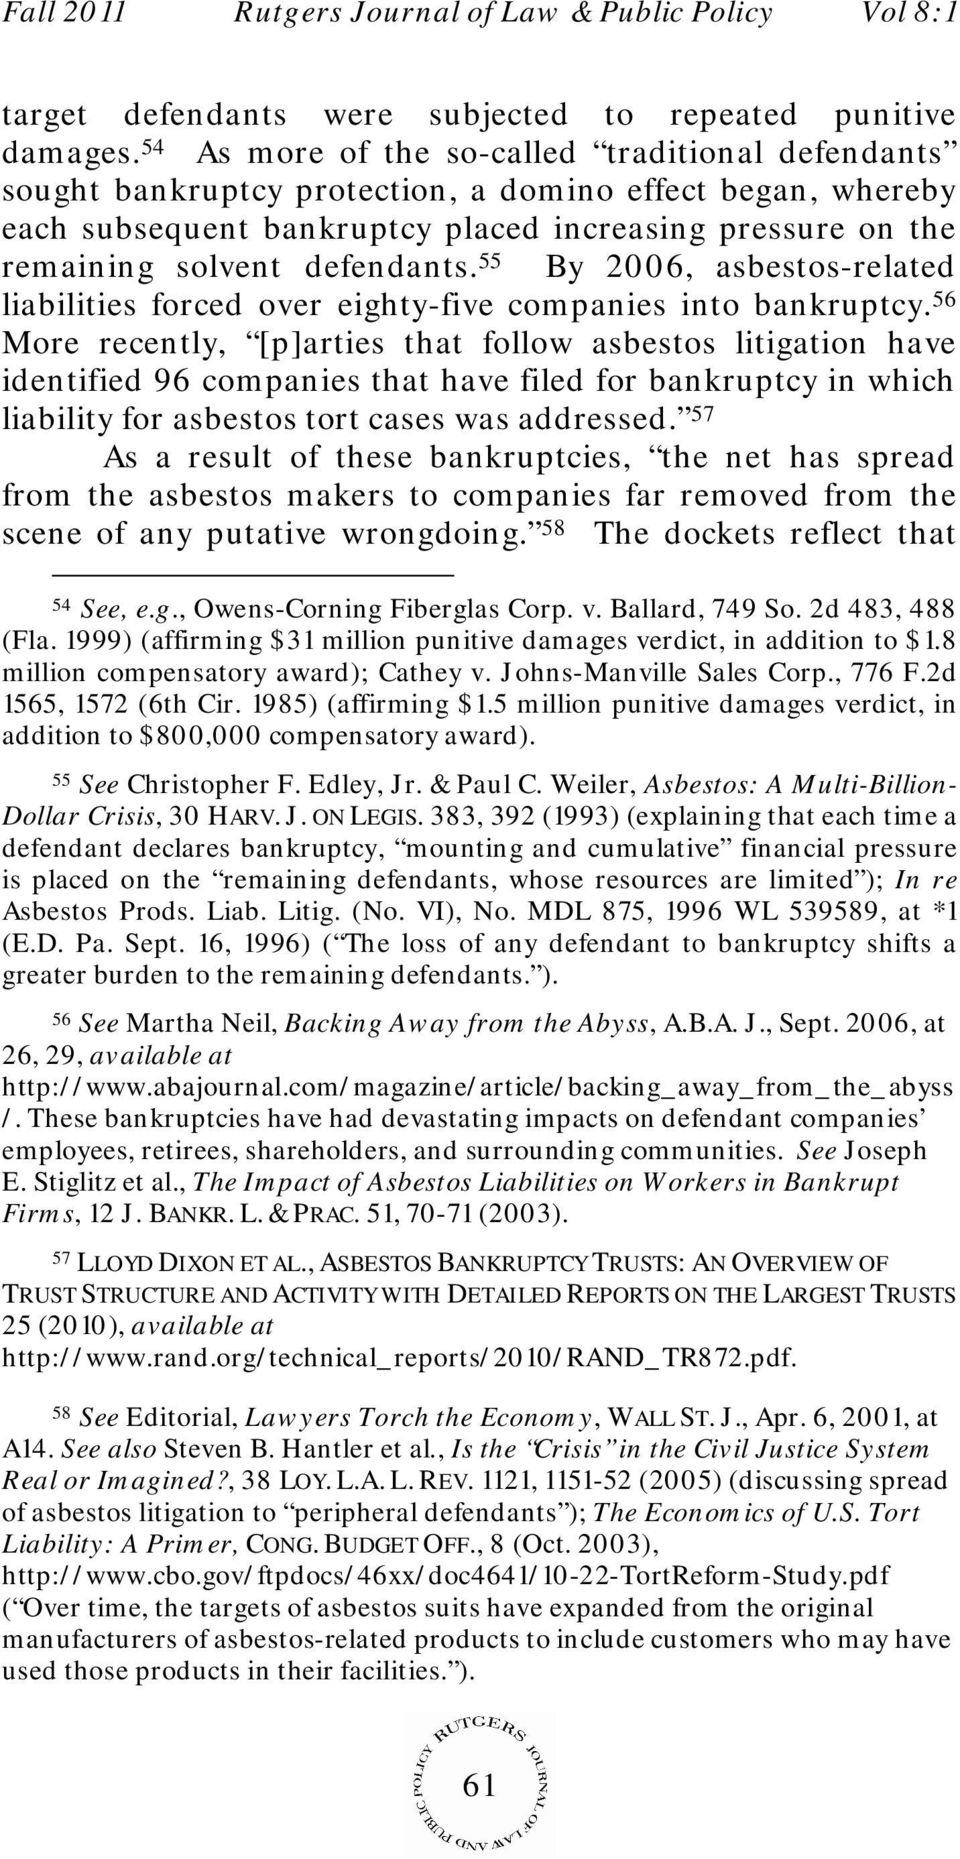 defendants. 55 By 2006, asbestos-related liabilities forced over eighty-five companies into bankruptcy.